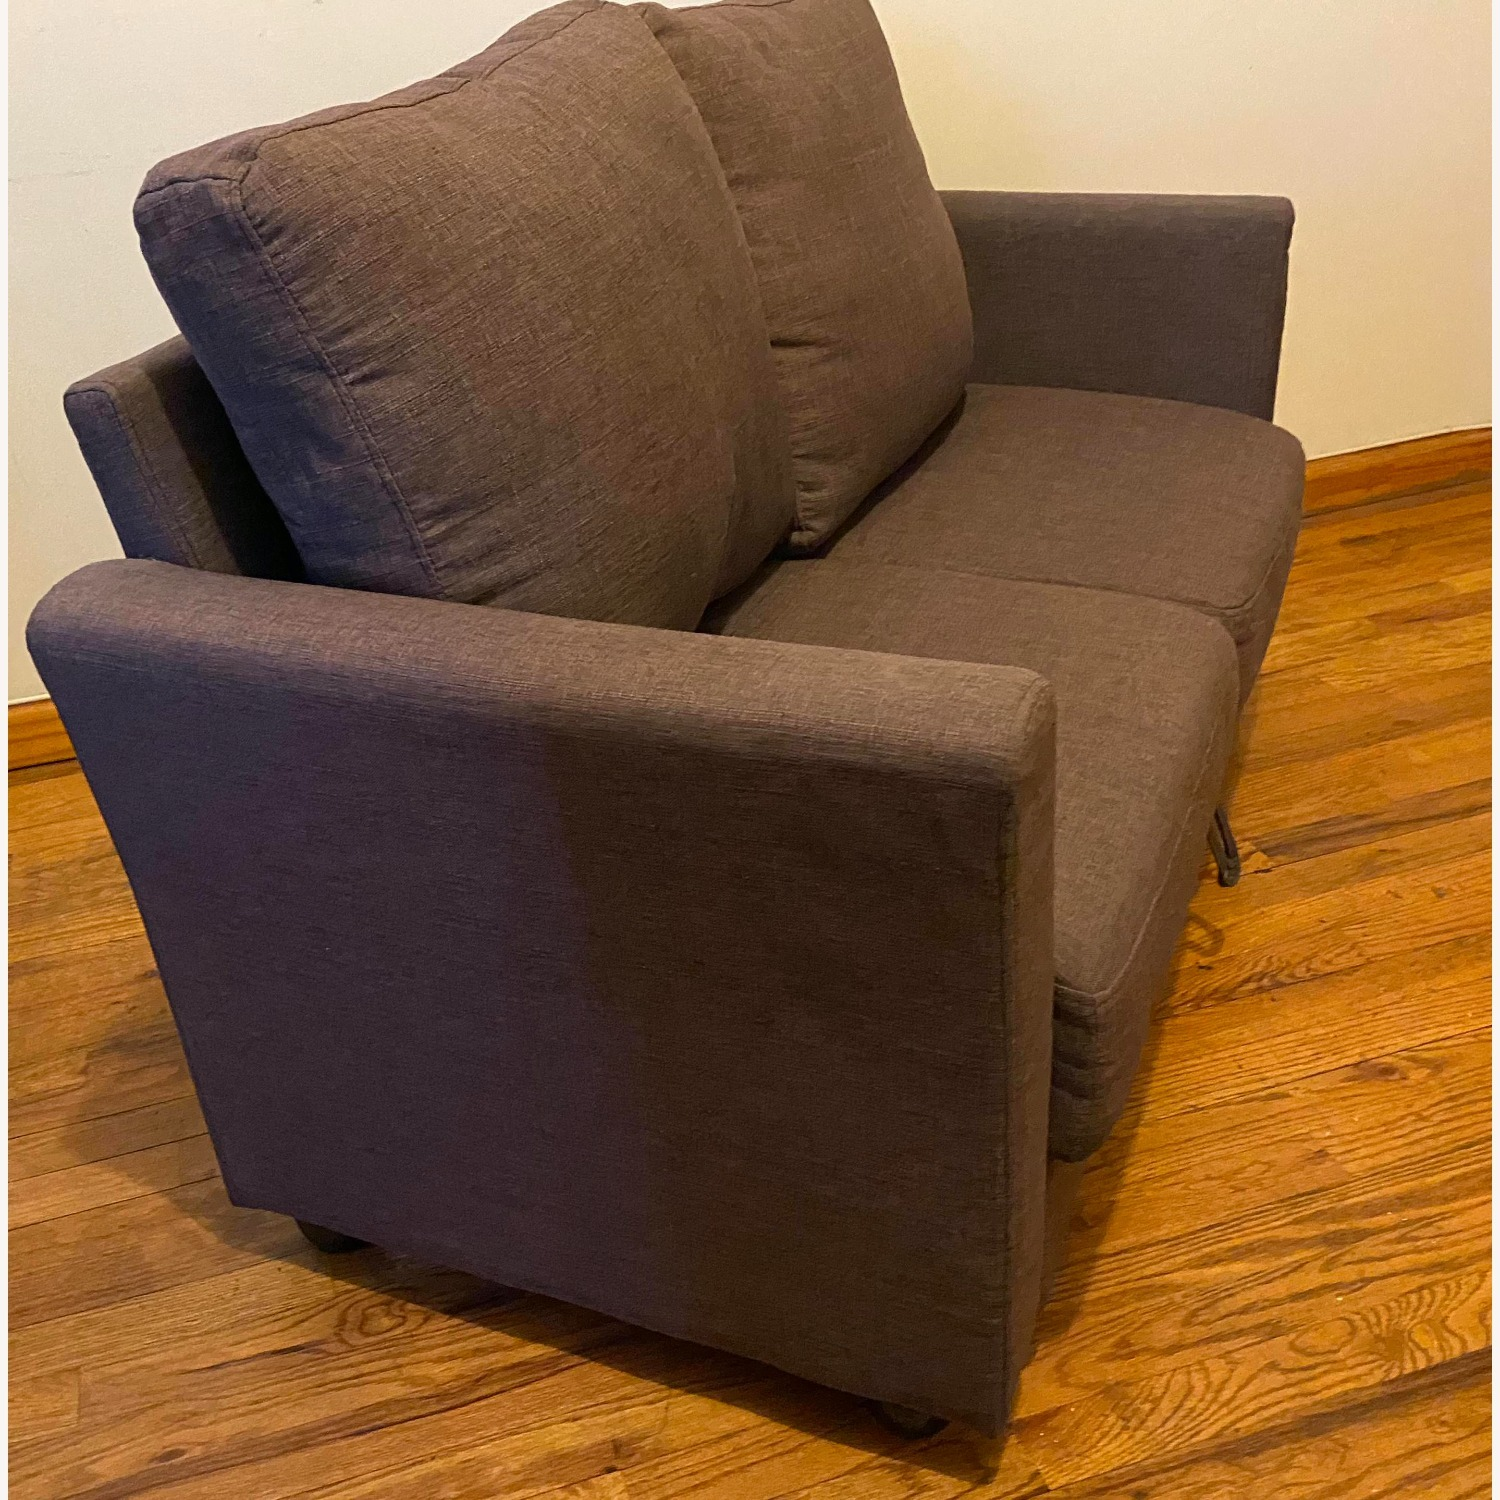 Two Seater Sofa with Storage - image-3